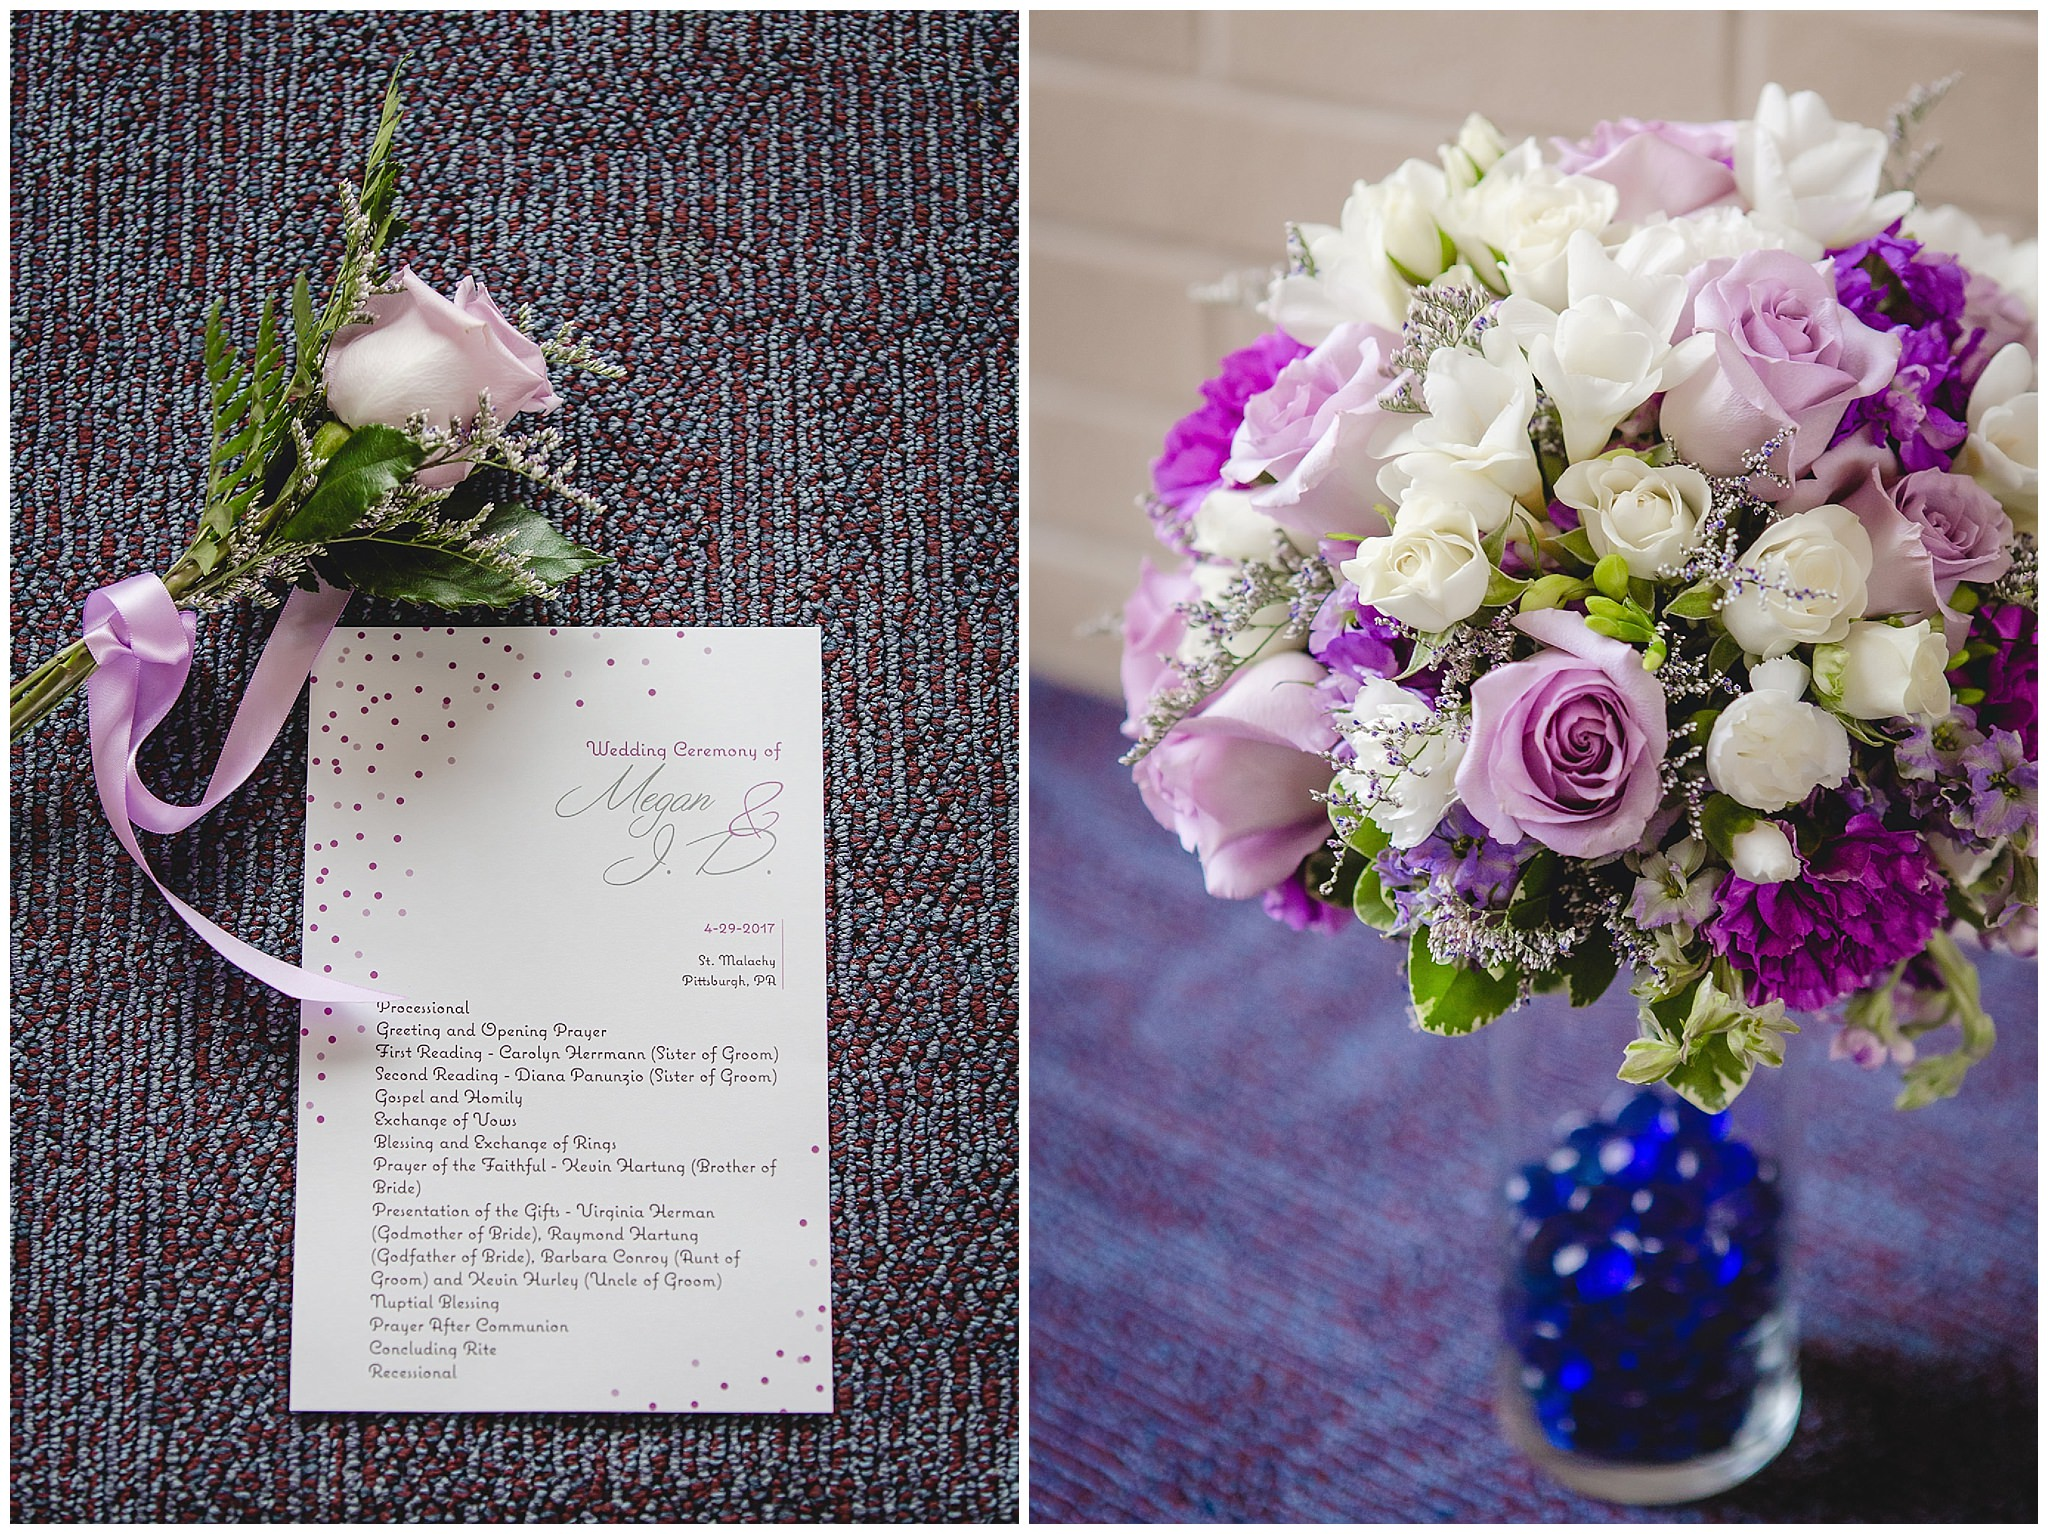 Wedding program and bride's bouquet by Carrie Anne Powell Floral Designs